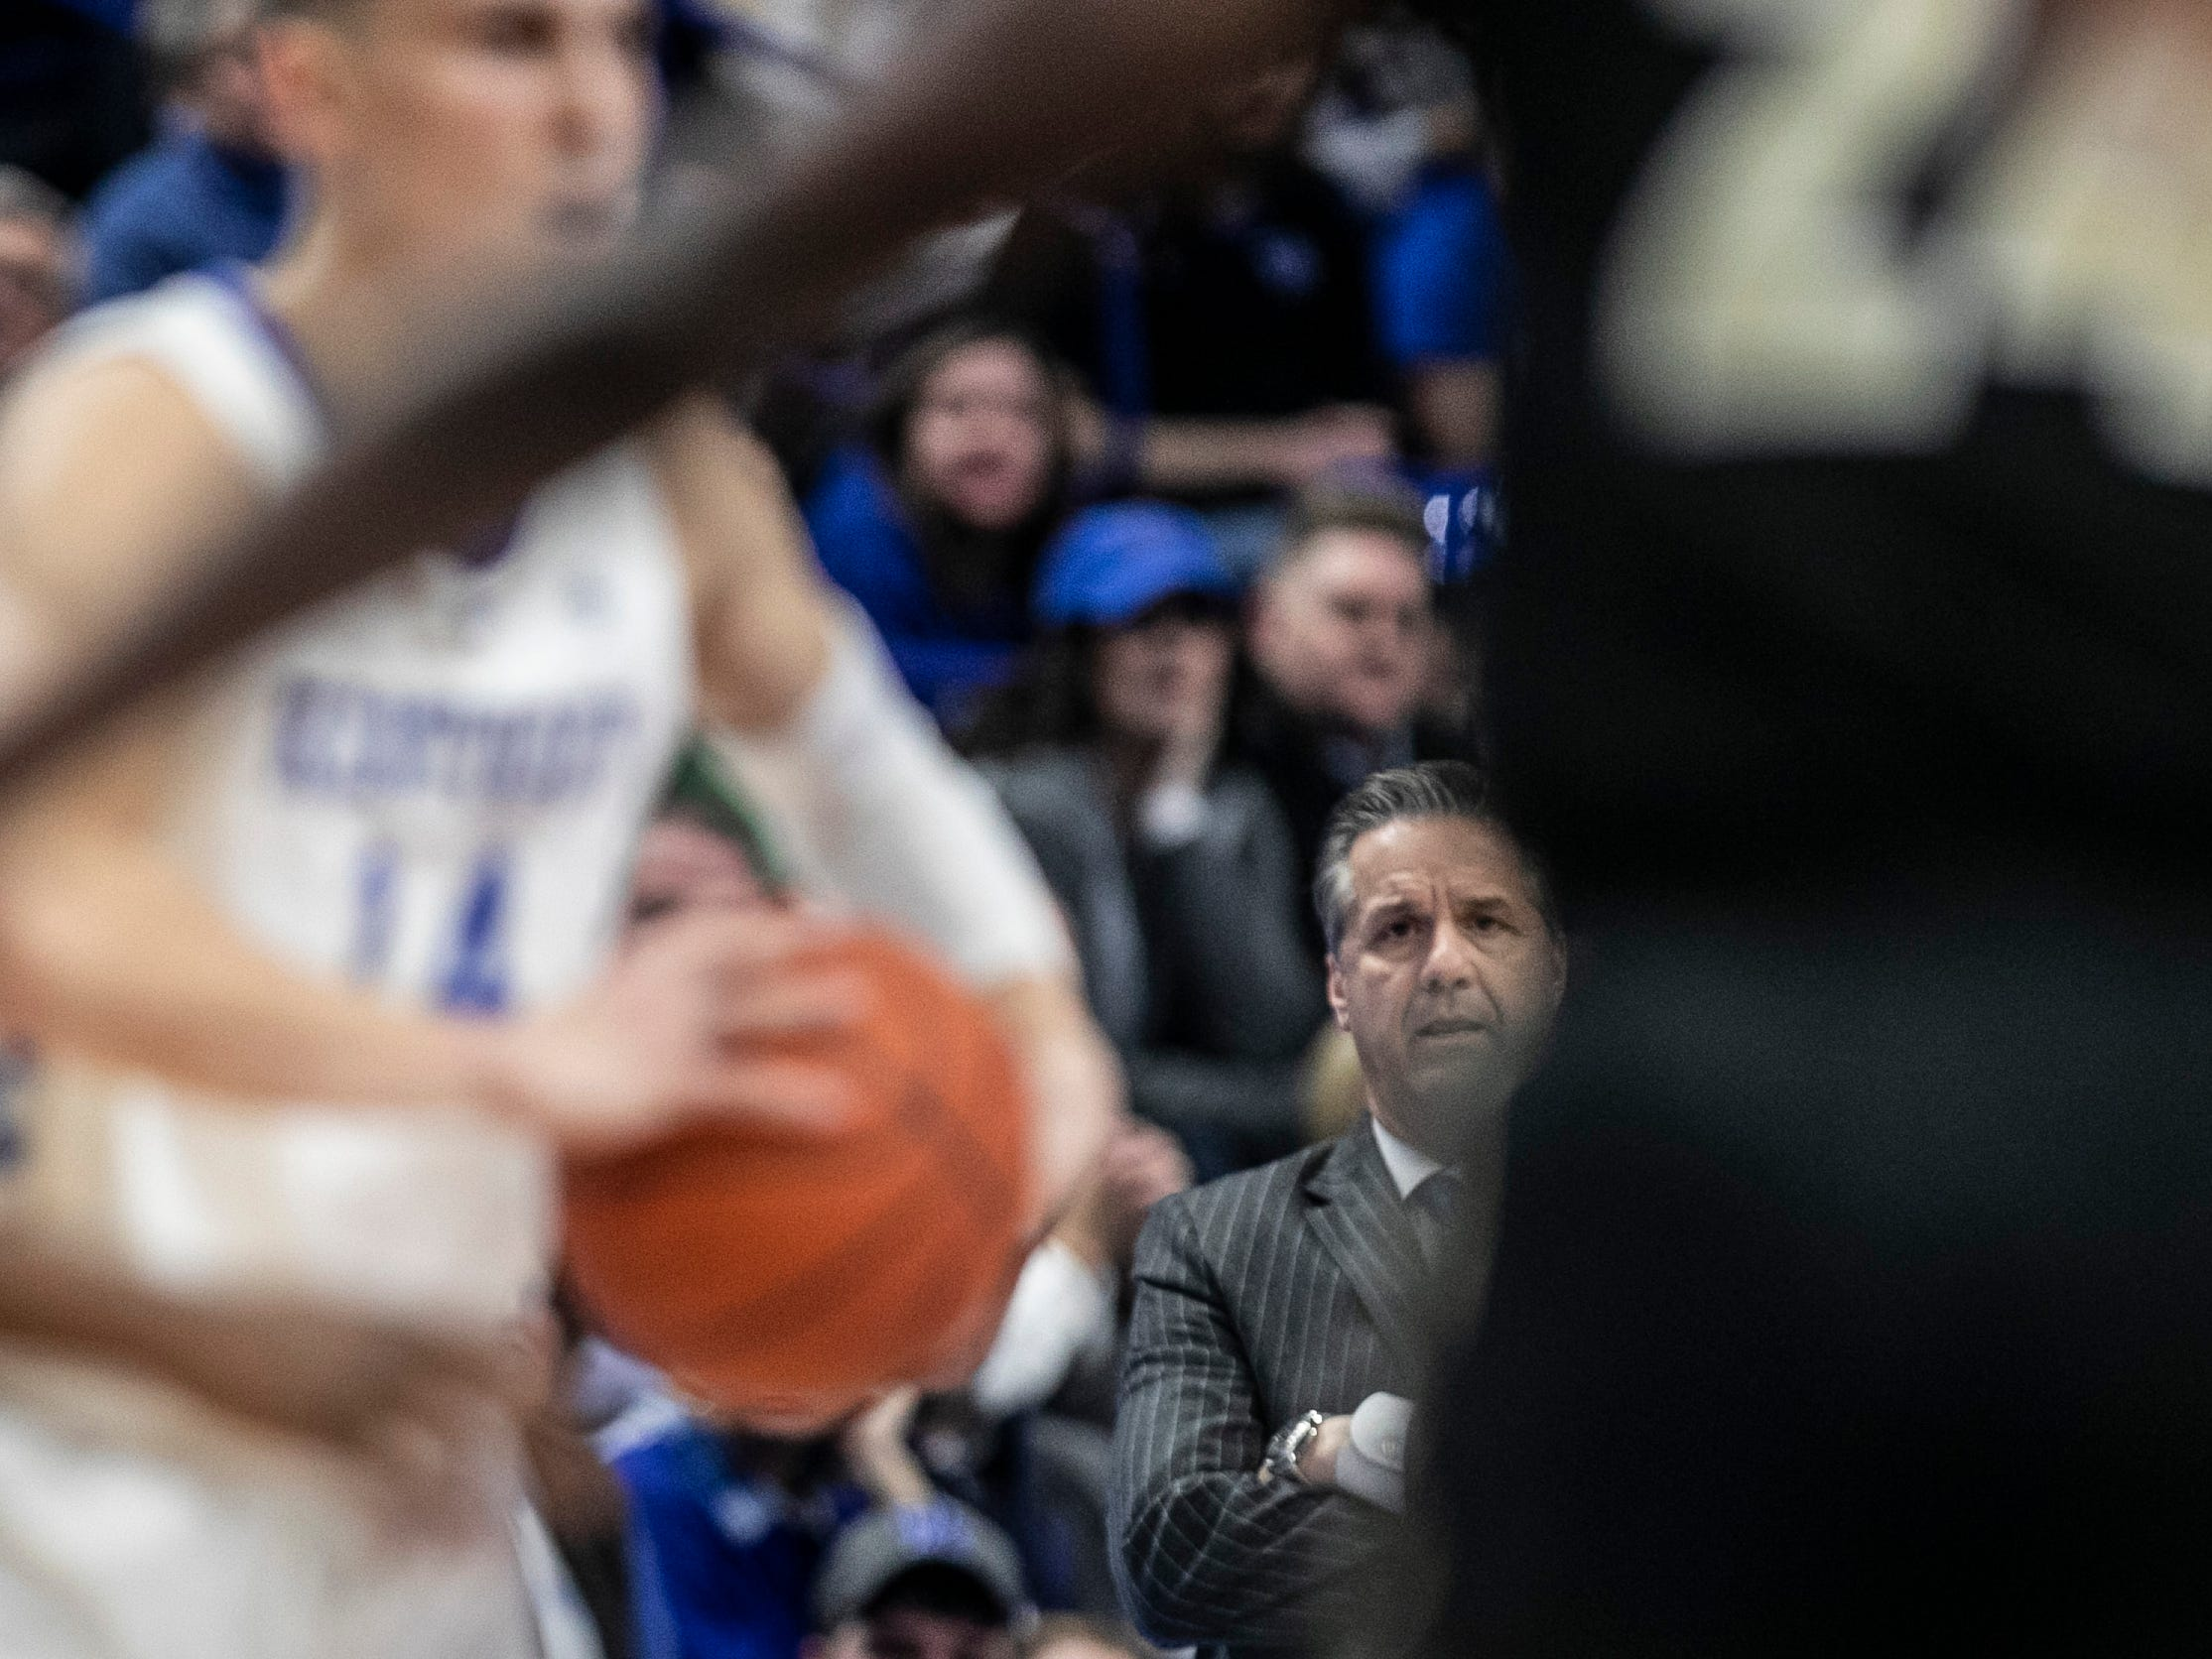 """We start the game and just get smashed,"" said Kentucky head coach John Calipari, watching his team in the first half against Vanderbilt. ""As the game goes on, if you stay desperate you will have your chances."" January 12, 2019"